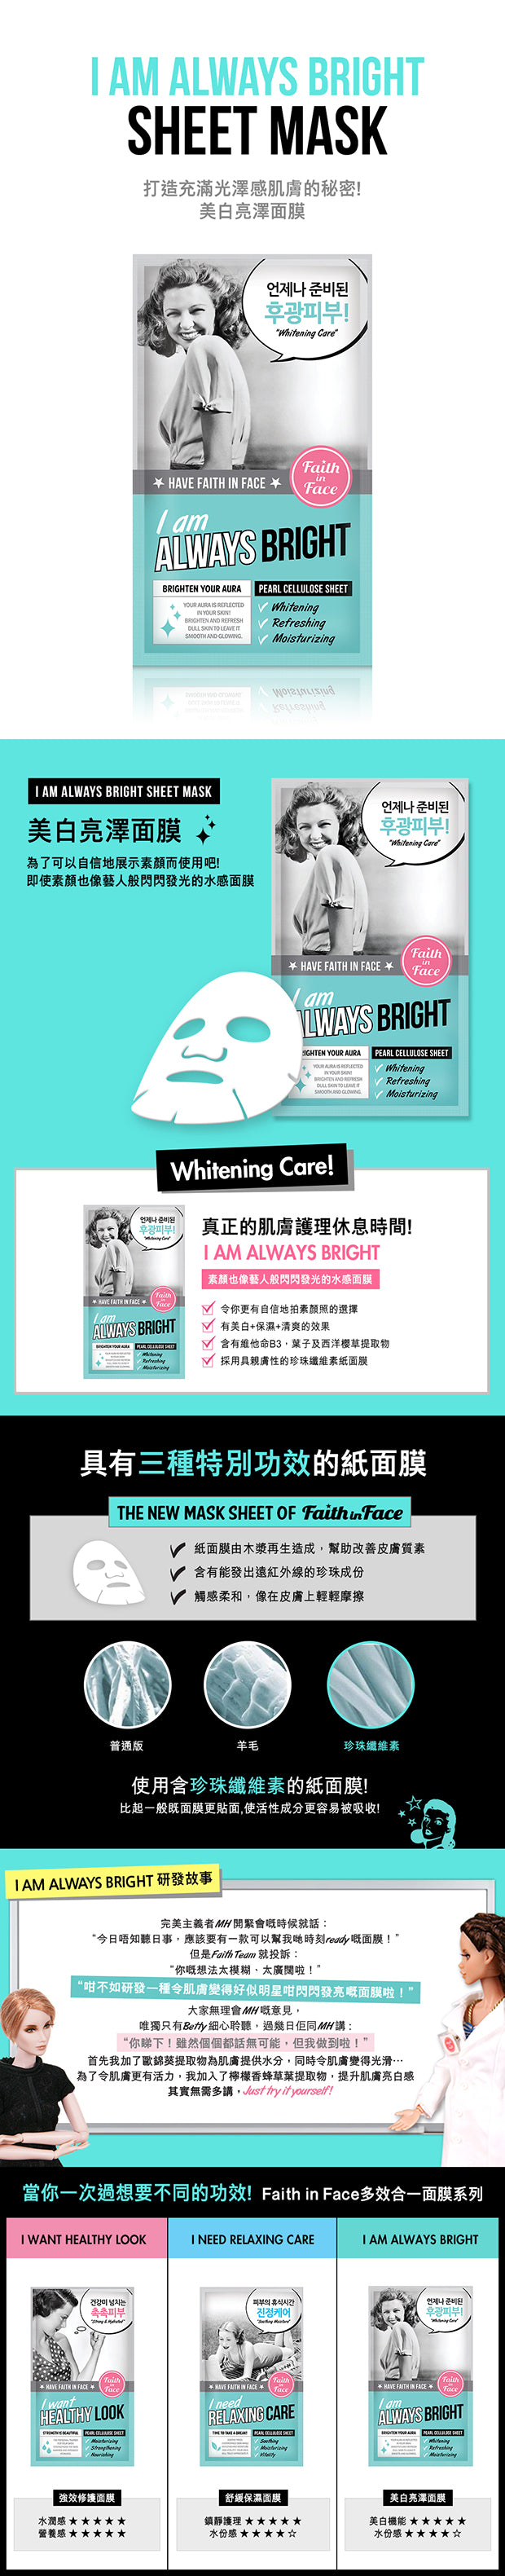 Faith in Face - I Am Always Bright Sheet Mask 美白亮澤珍珠纖維面膜 10片裝